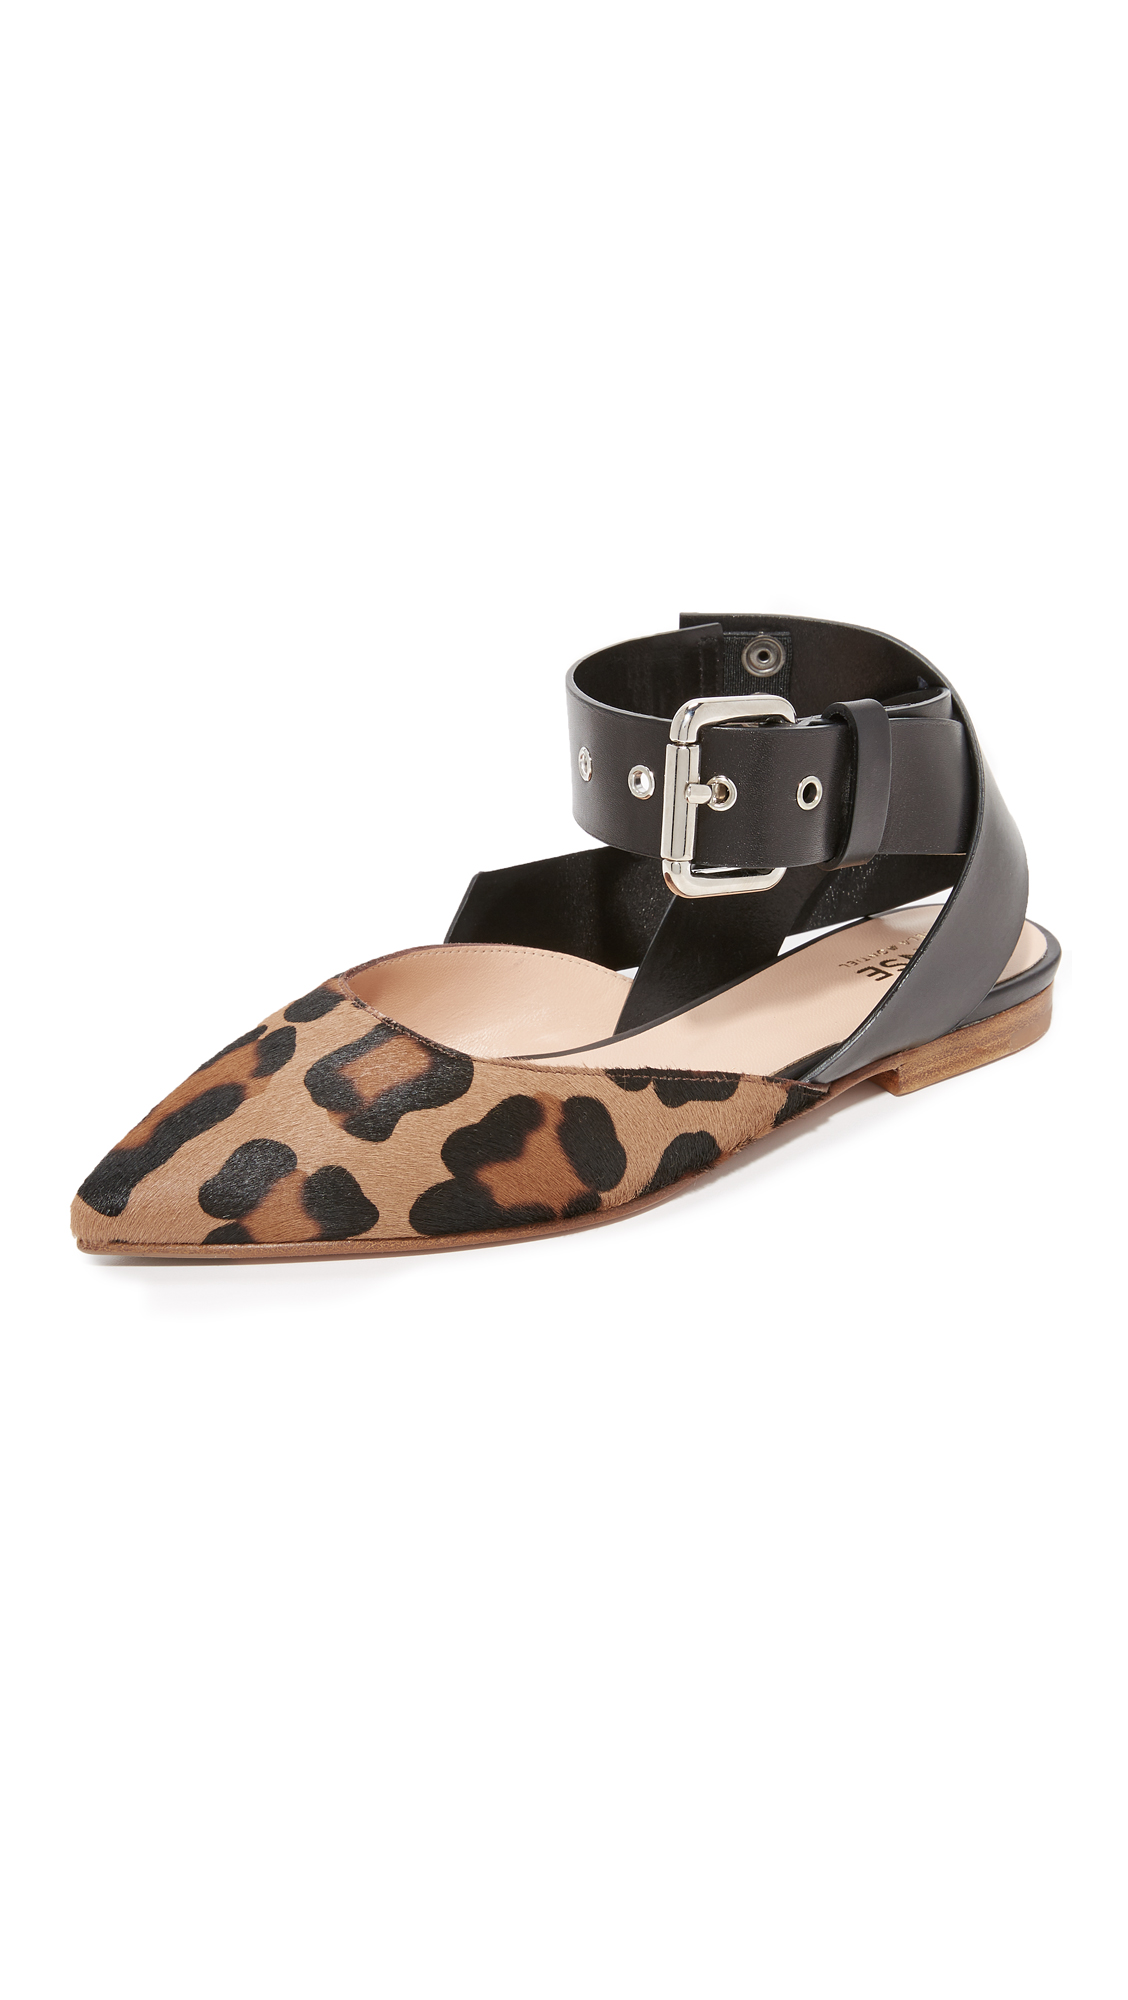 Monse Haircalf Flats - Leopard